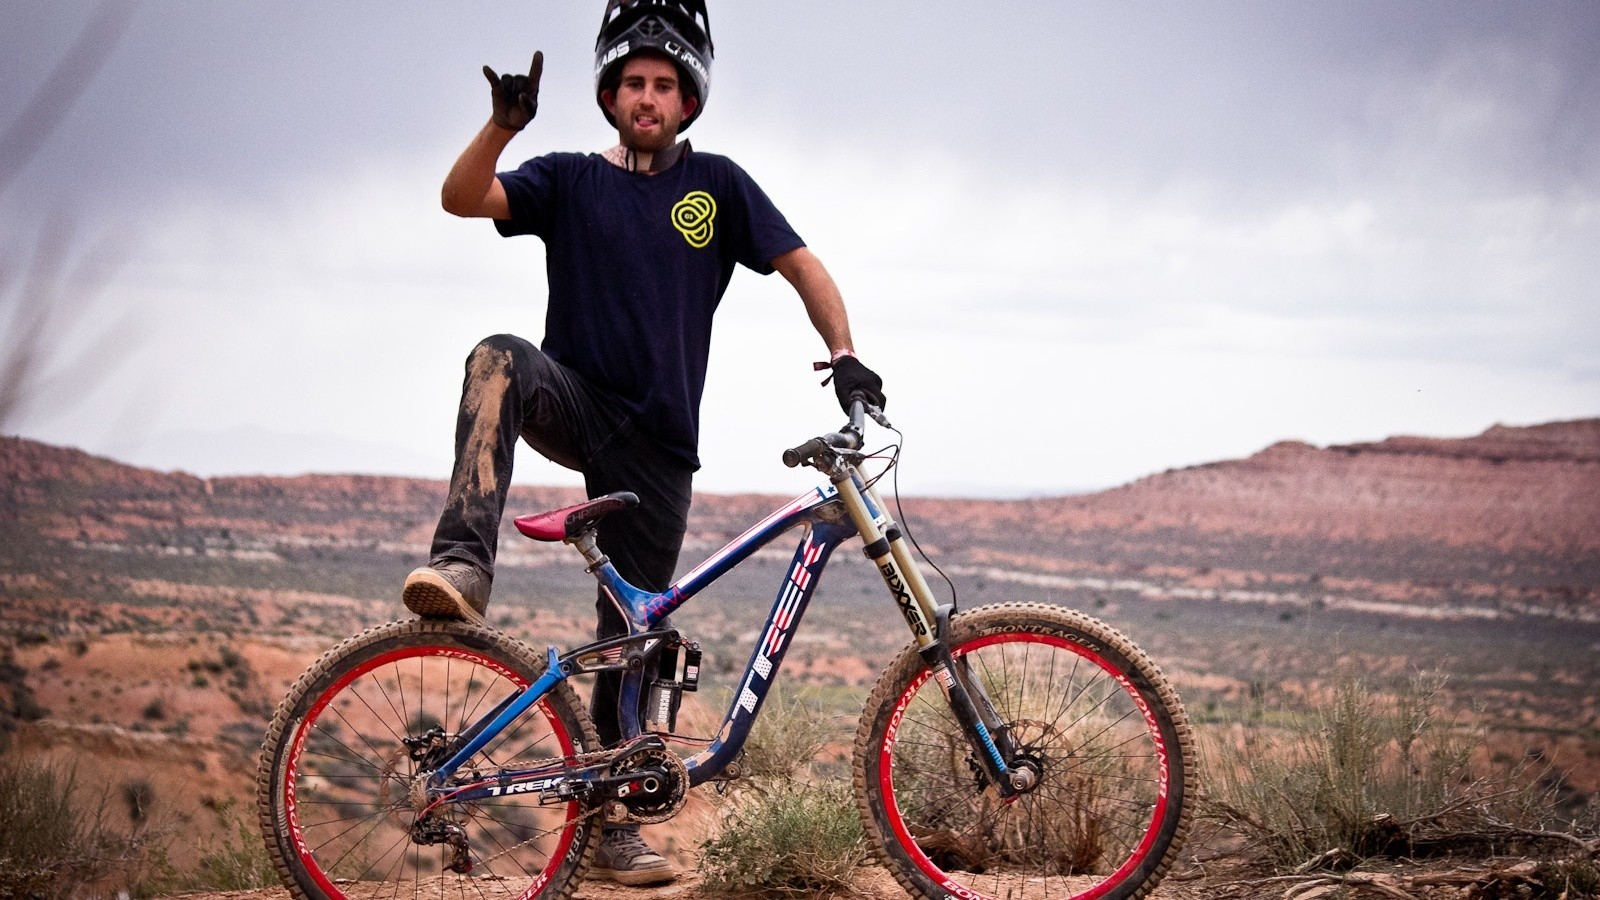 55e4ab1474f Out of These 14 Rampage Bikes, Which is Your Favorite? - Mountain ...